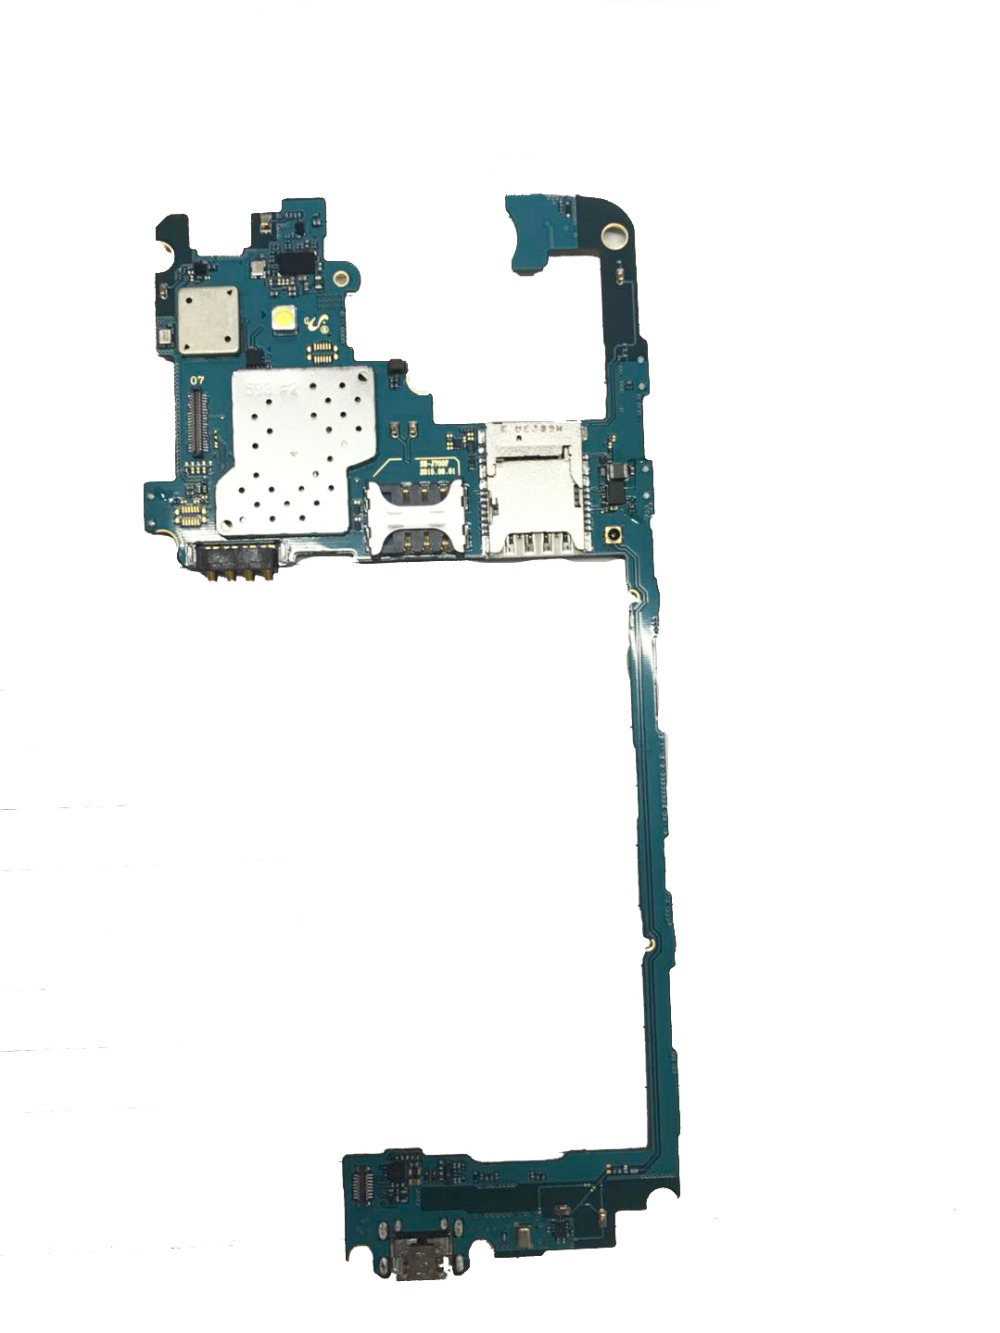 Samsung Mobile Phone Motherboard Problem 2020